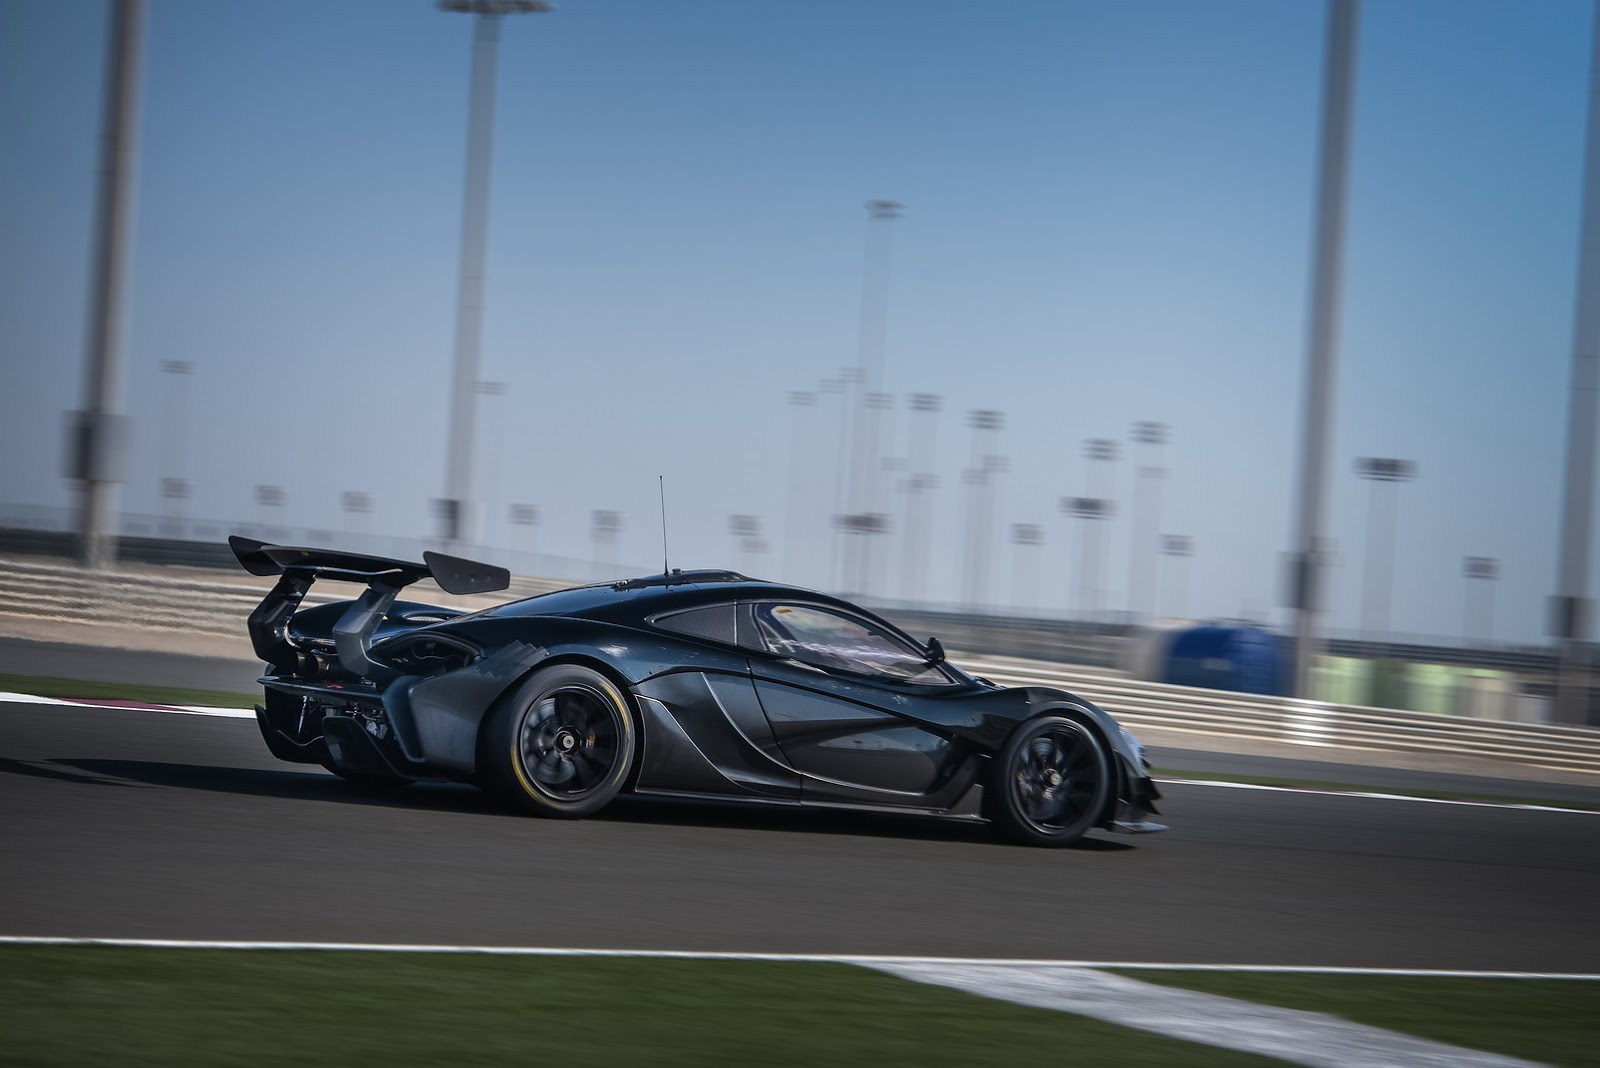 Mclaren p1 gtr extreme track weapon unveiled pictures - Mclaren P1 Gtr Extreme Track Weapon Unveiled Pictures 16